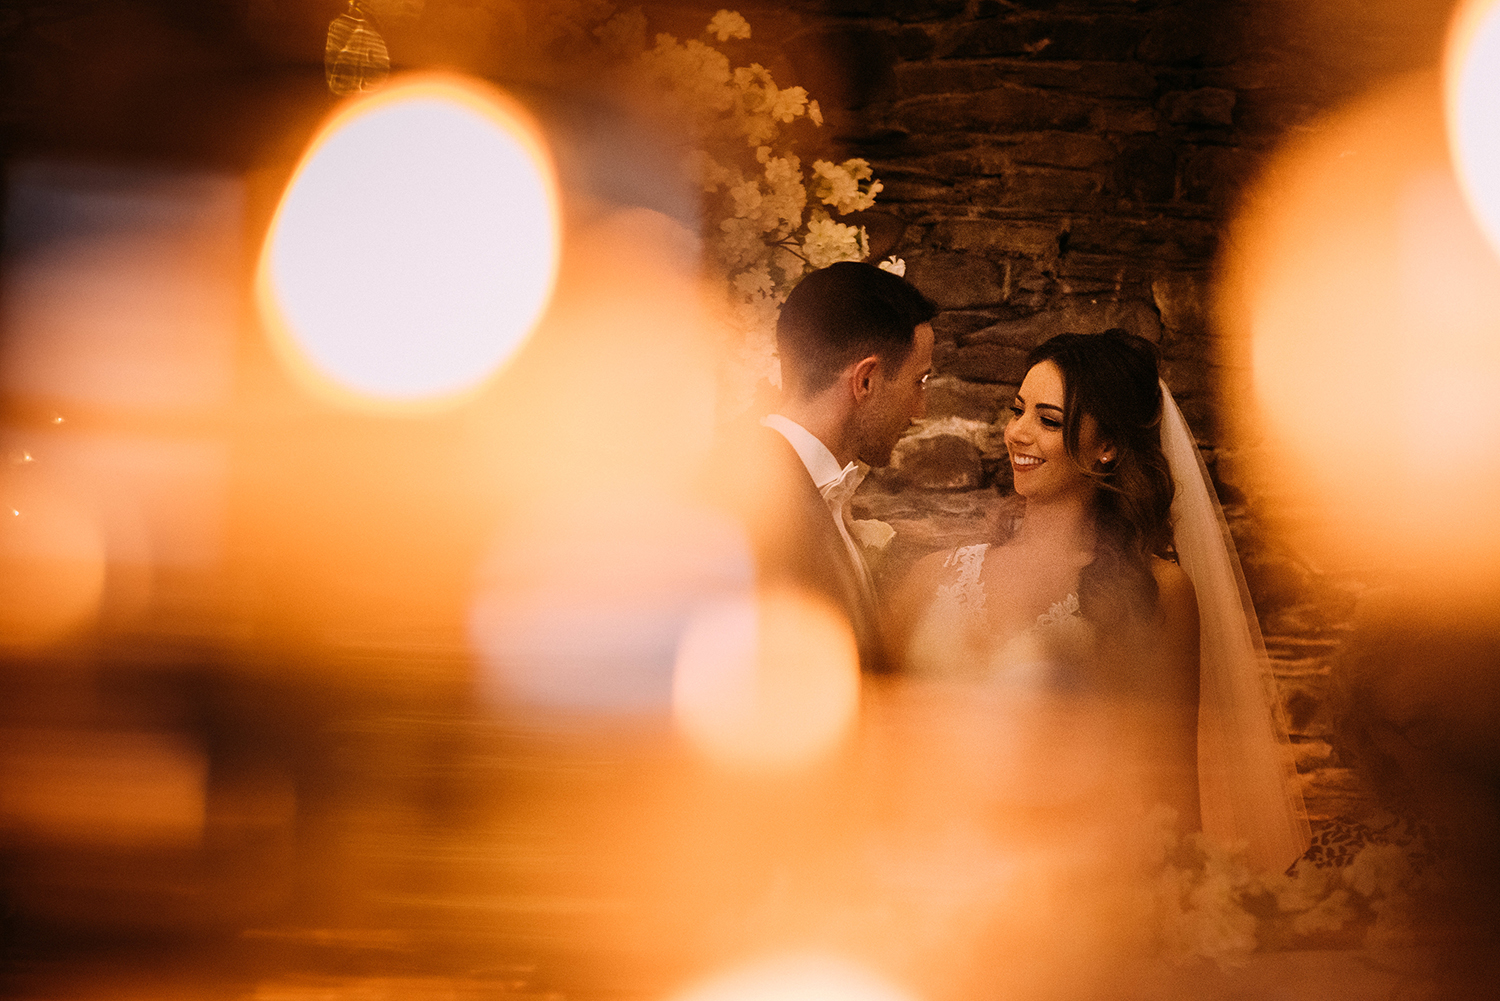 bride smiling at the groom through candle light